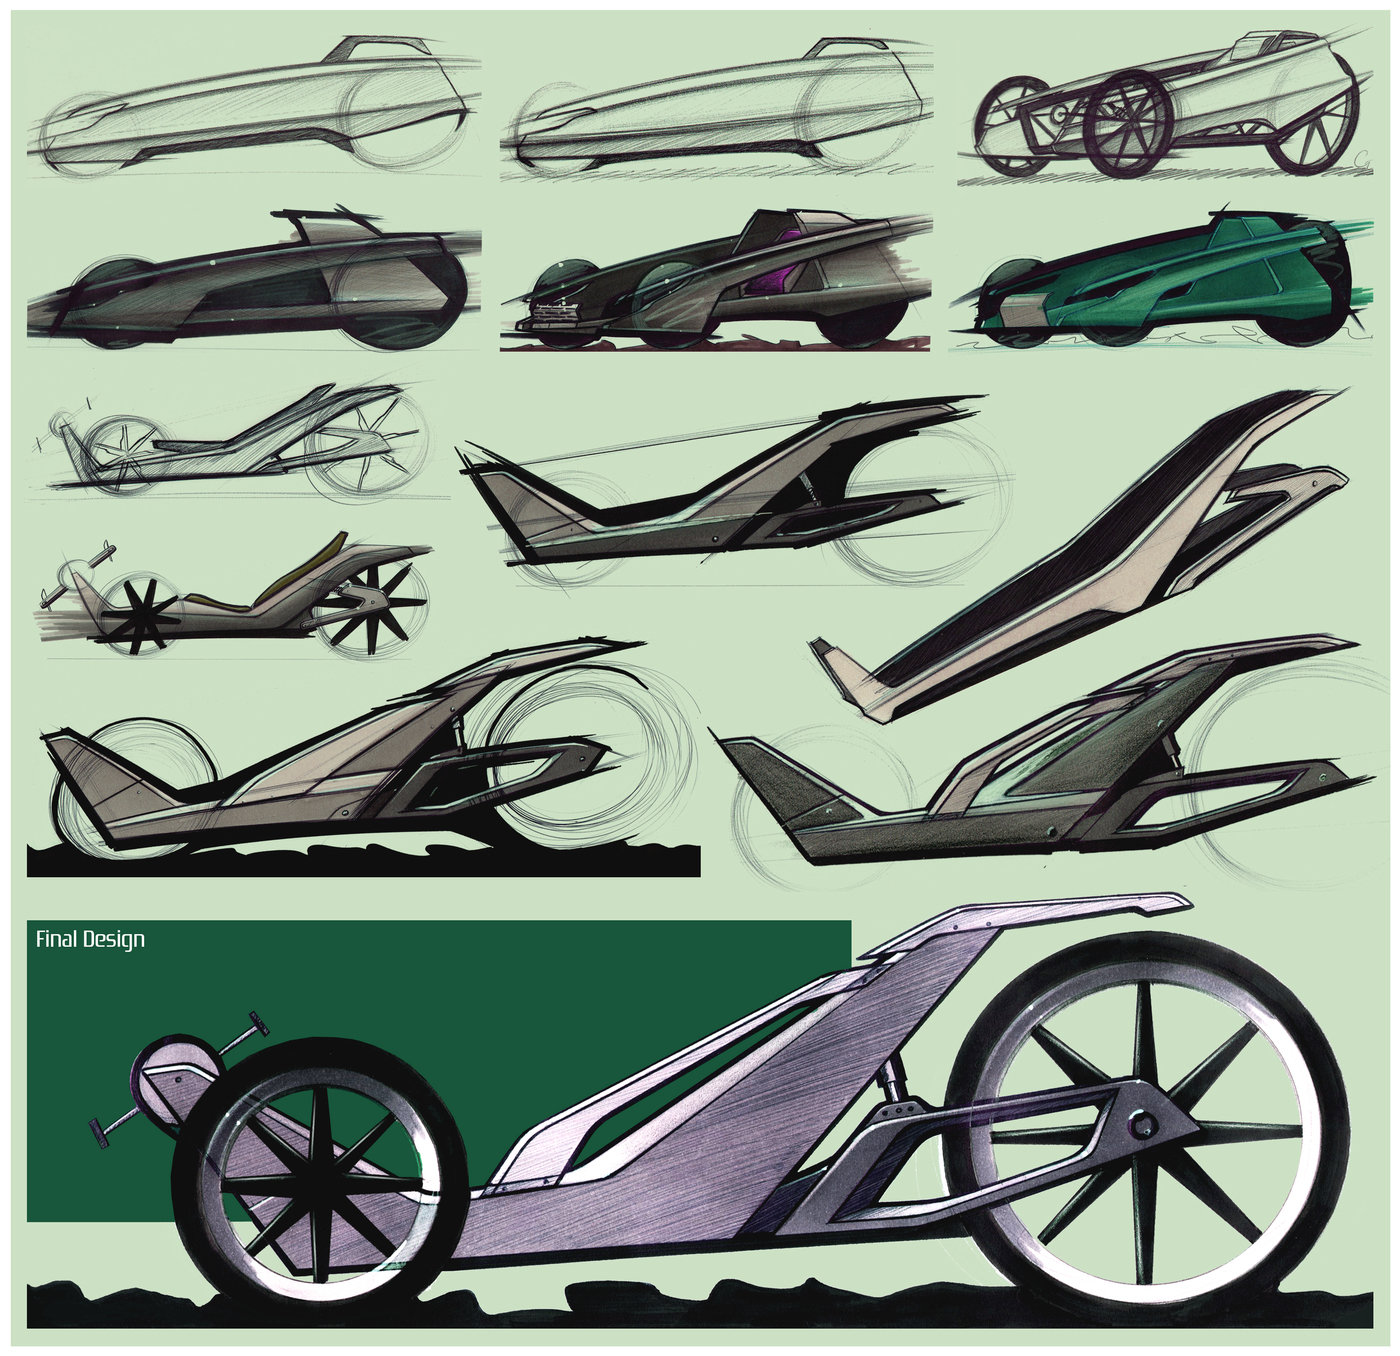 Land Rover Xr 3 Recumbent Bike By David Gilmore At Belt Routing A Selection Of Early Sketch Work The Concept Can Be Clearly Seen Progressing From Larger Go Kart Type Downhill Racer To More Elegant Layout